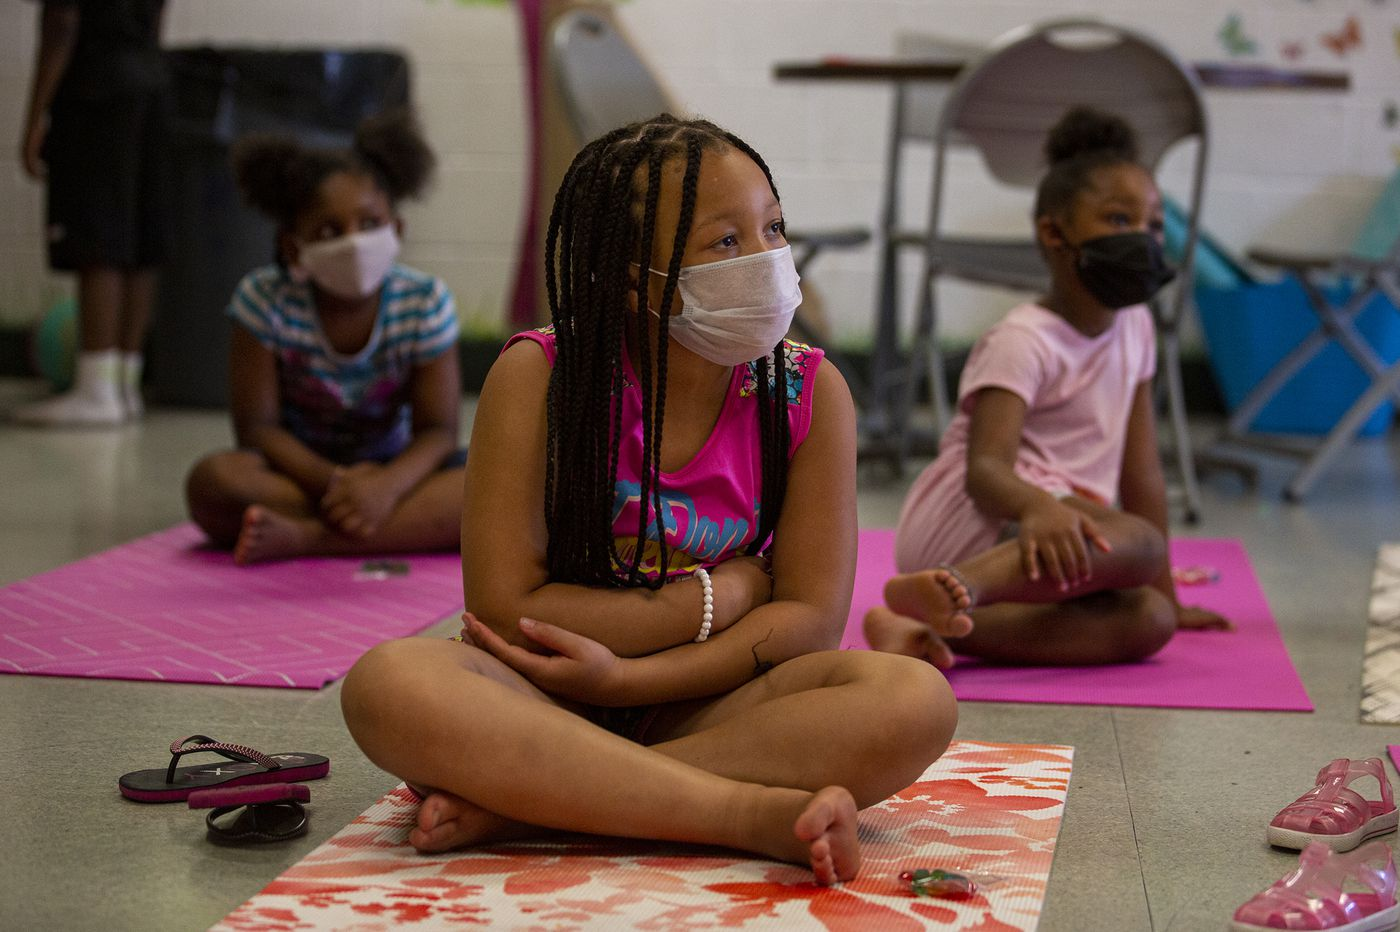 In a coronavirus summer, many kids' camps shutter, others open — with masks, gallons of sanitizer, and no tag